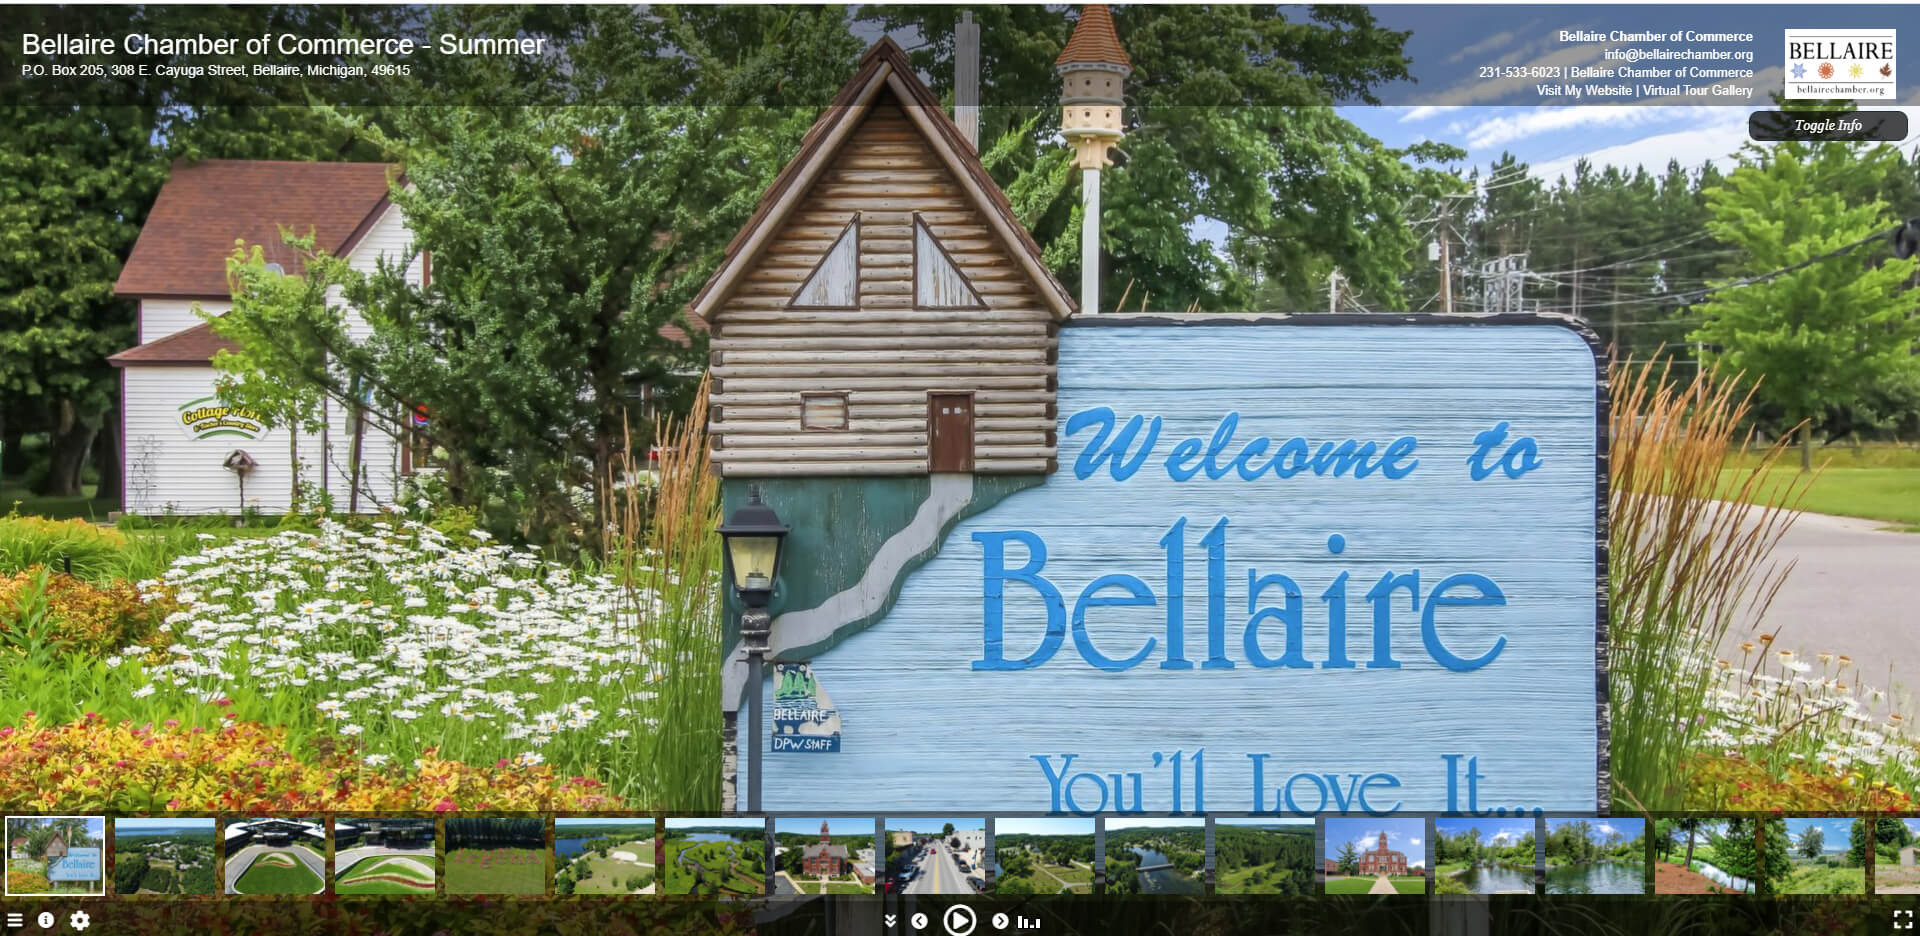 bellaire-chamber-commerce-summer